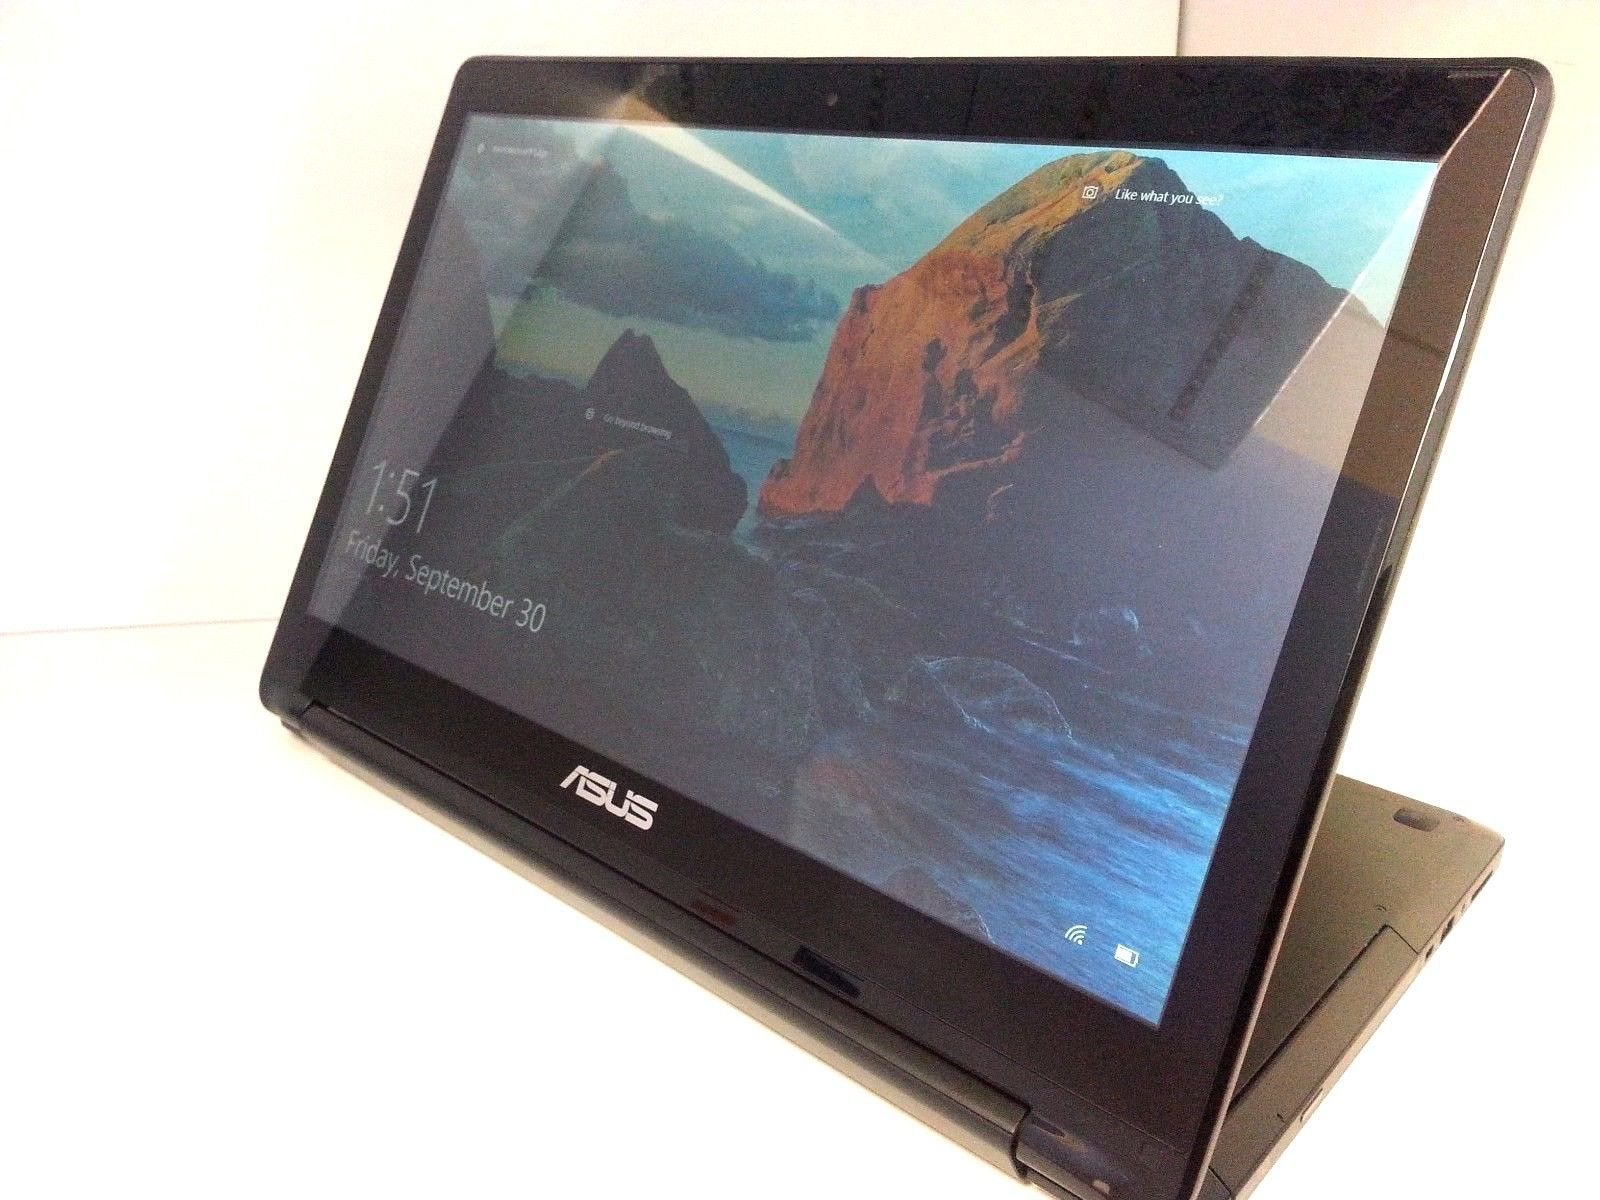 Asus Q551l Intel I7 4th Gen 8gb 1tb Convertible 2 In1 15 6 Hd Touch Laptop Asus Intel 8gb